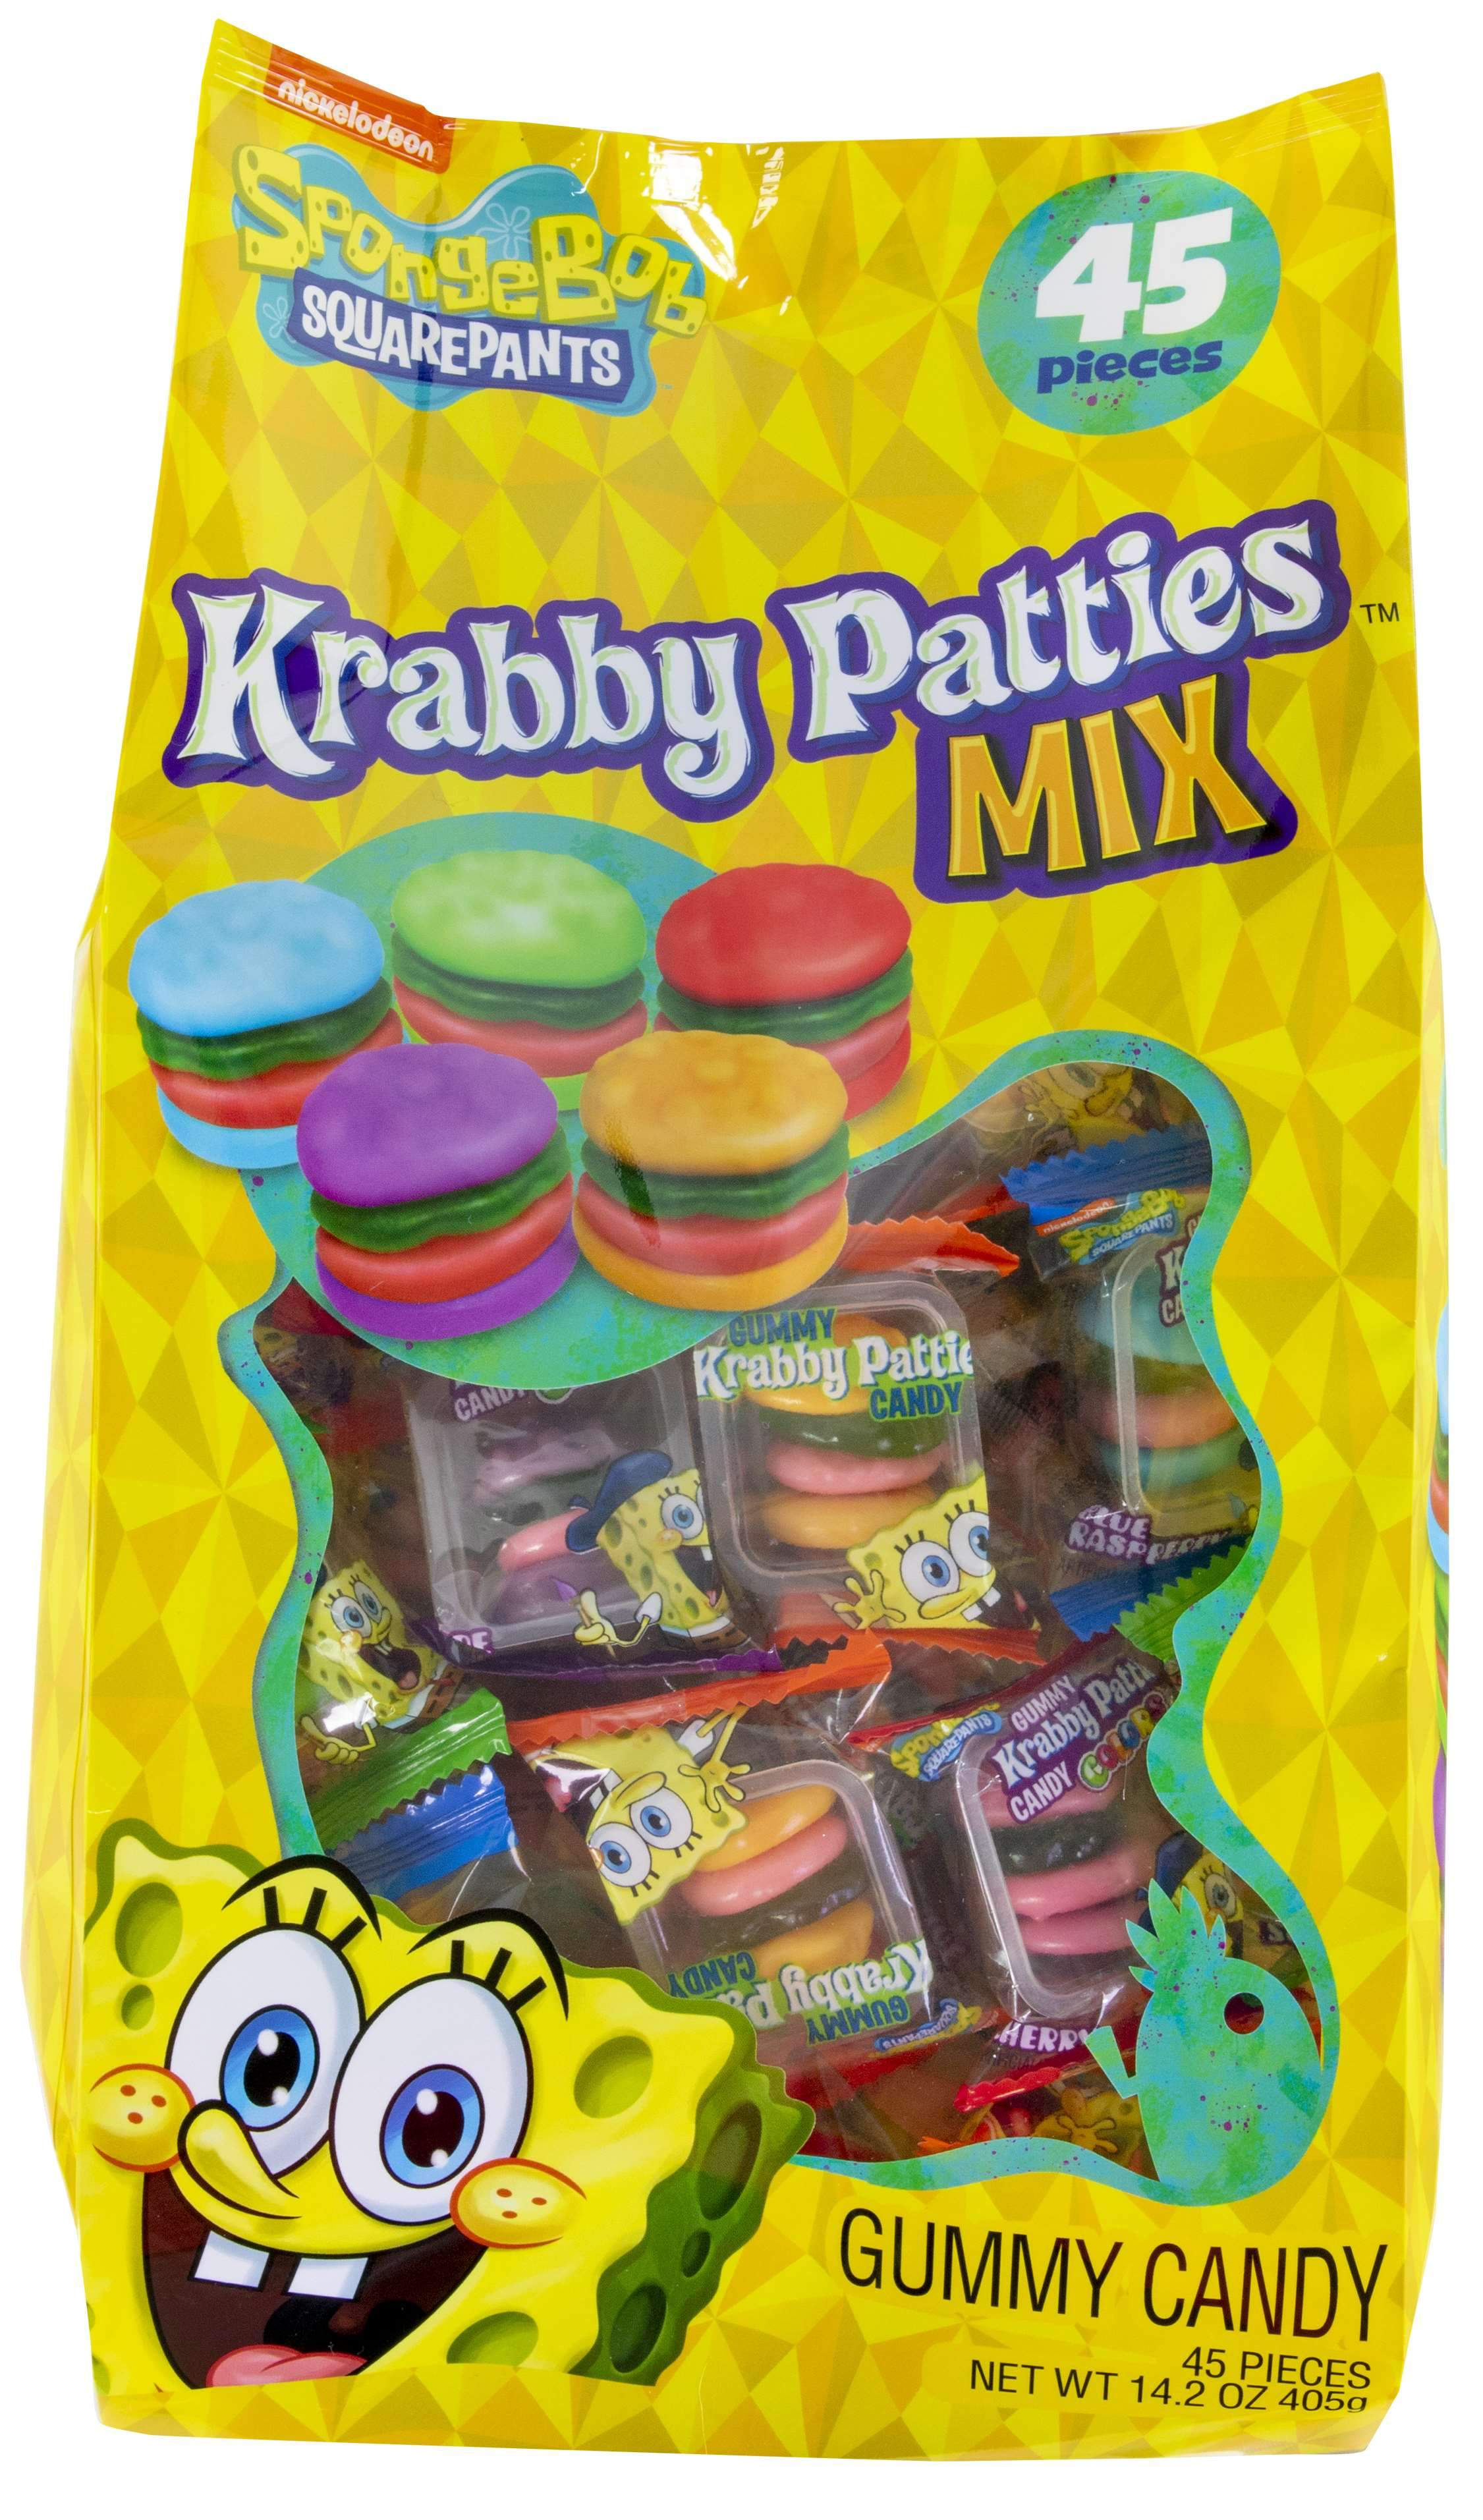 Krabby Patties Gummy Candy Frankford Candy Mix 14.2 Ounce